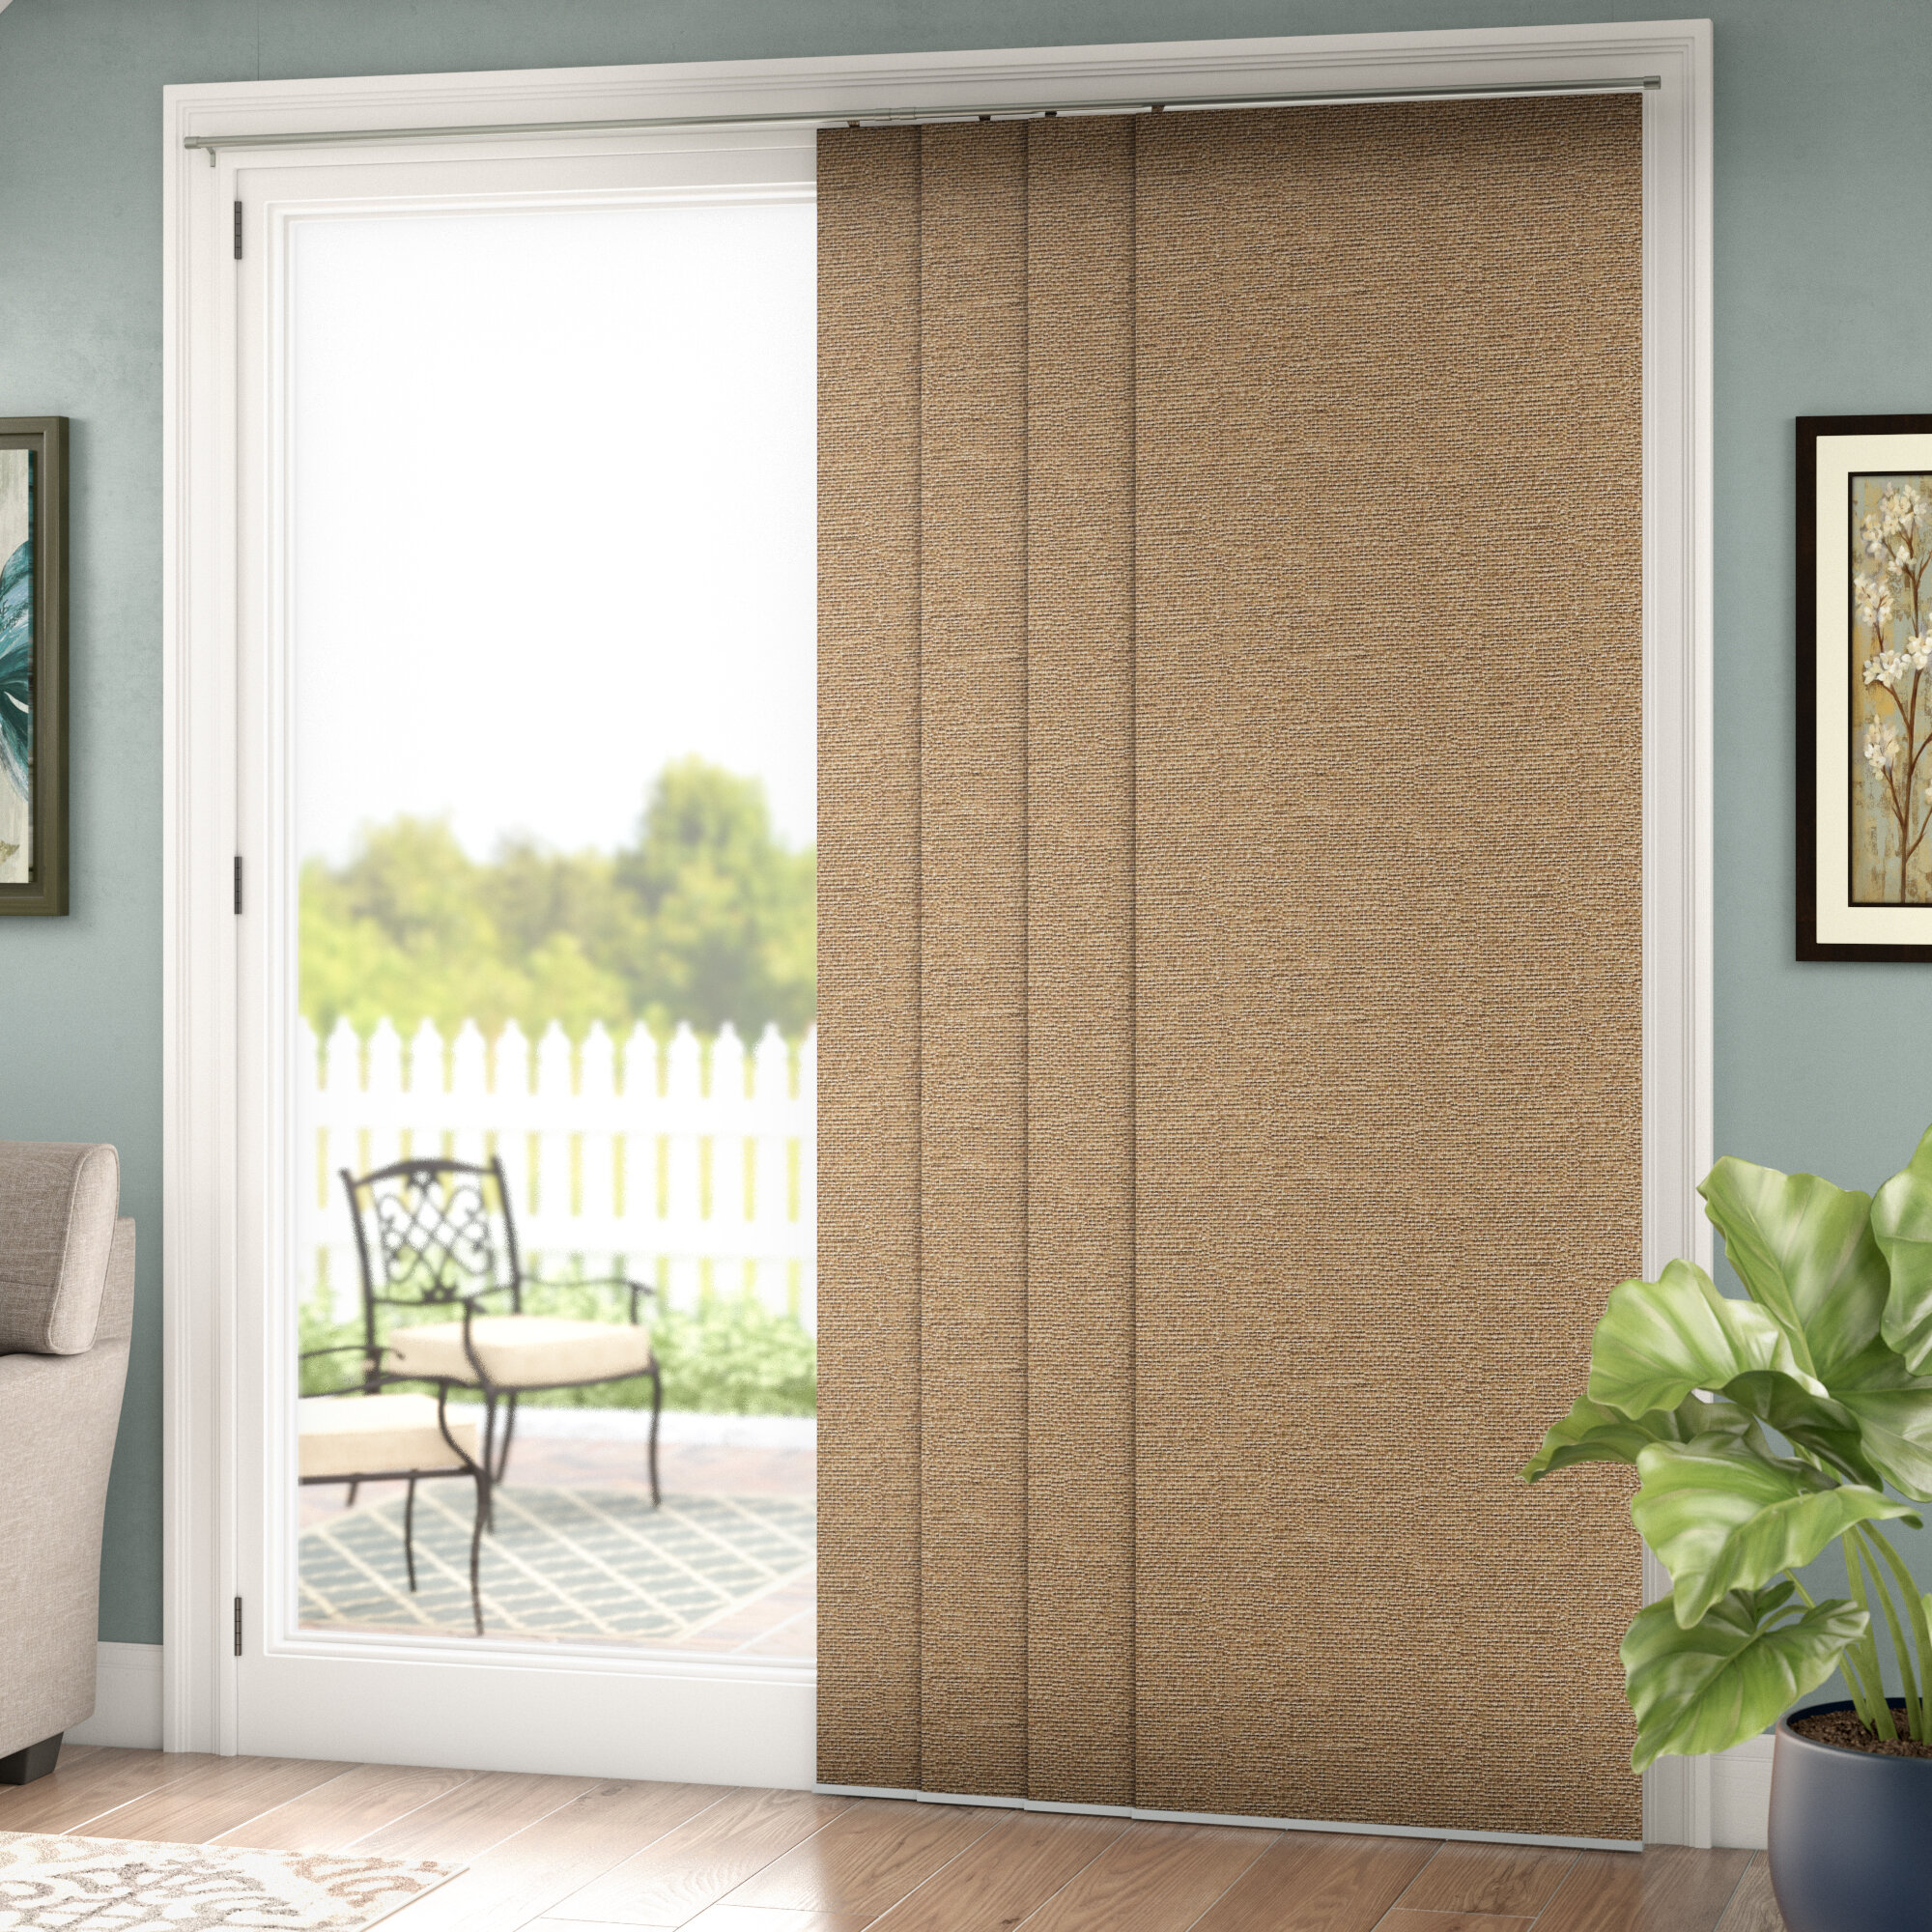 soften susan blinds patio up panels vertical those designs side s and swags